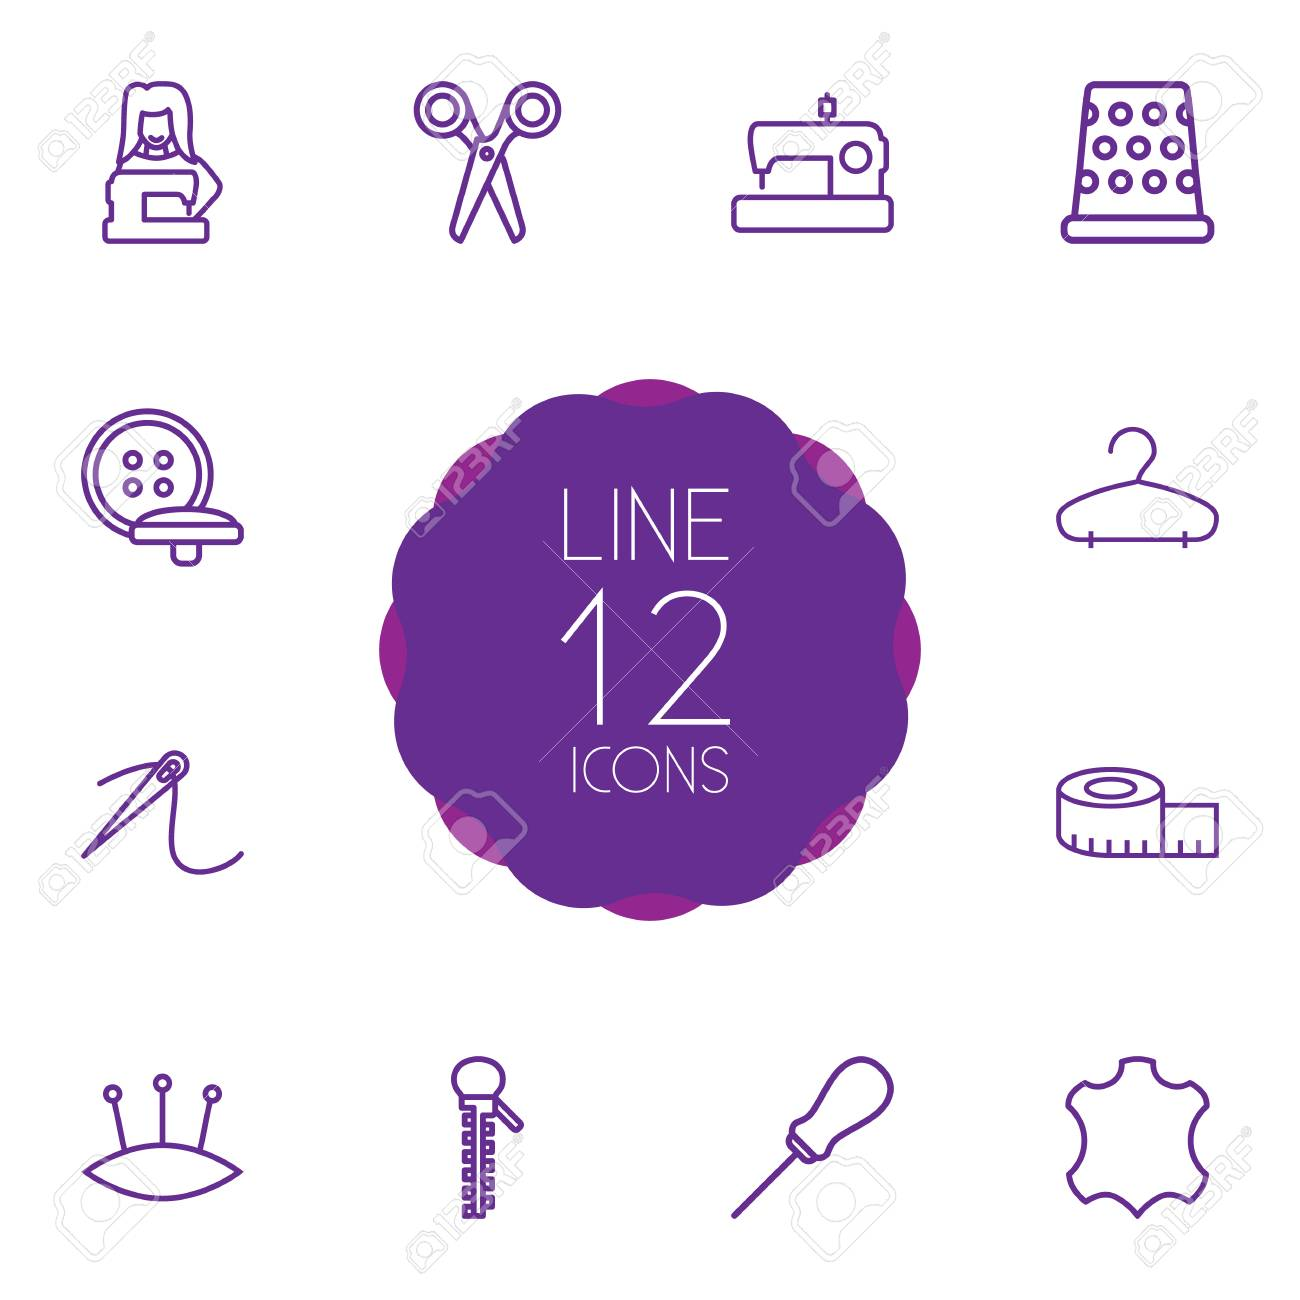 Set Of 12 Sewing Outline Icons Set Collection Of Needle, Awl,